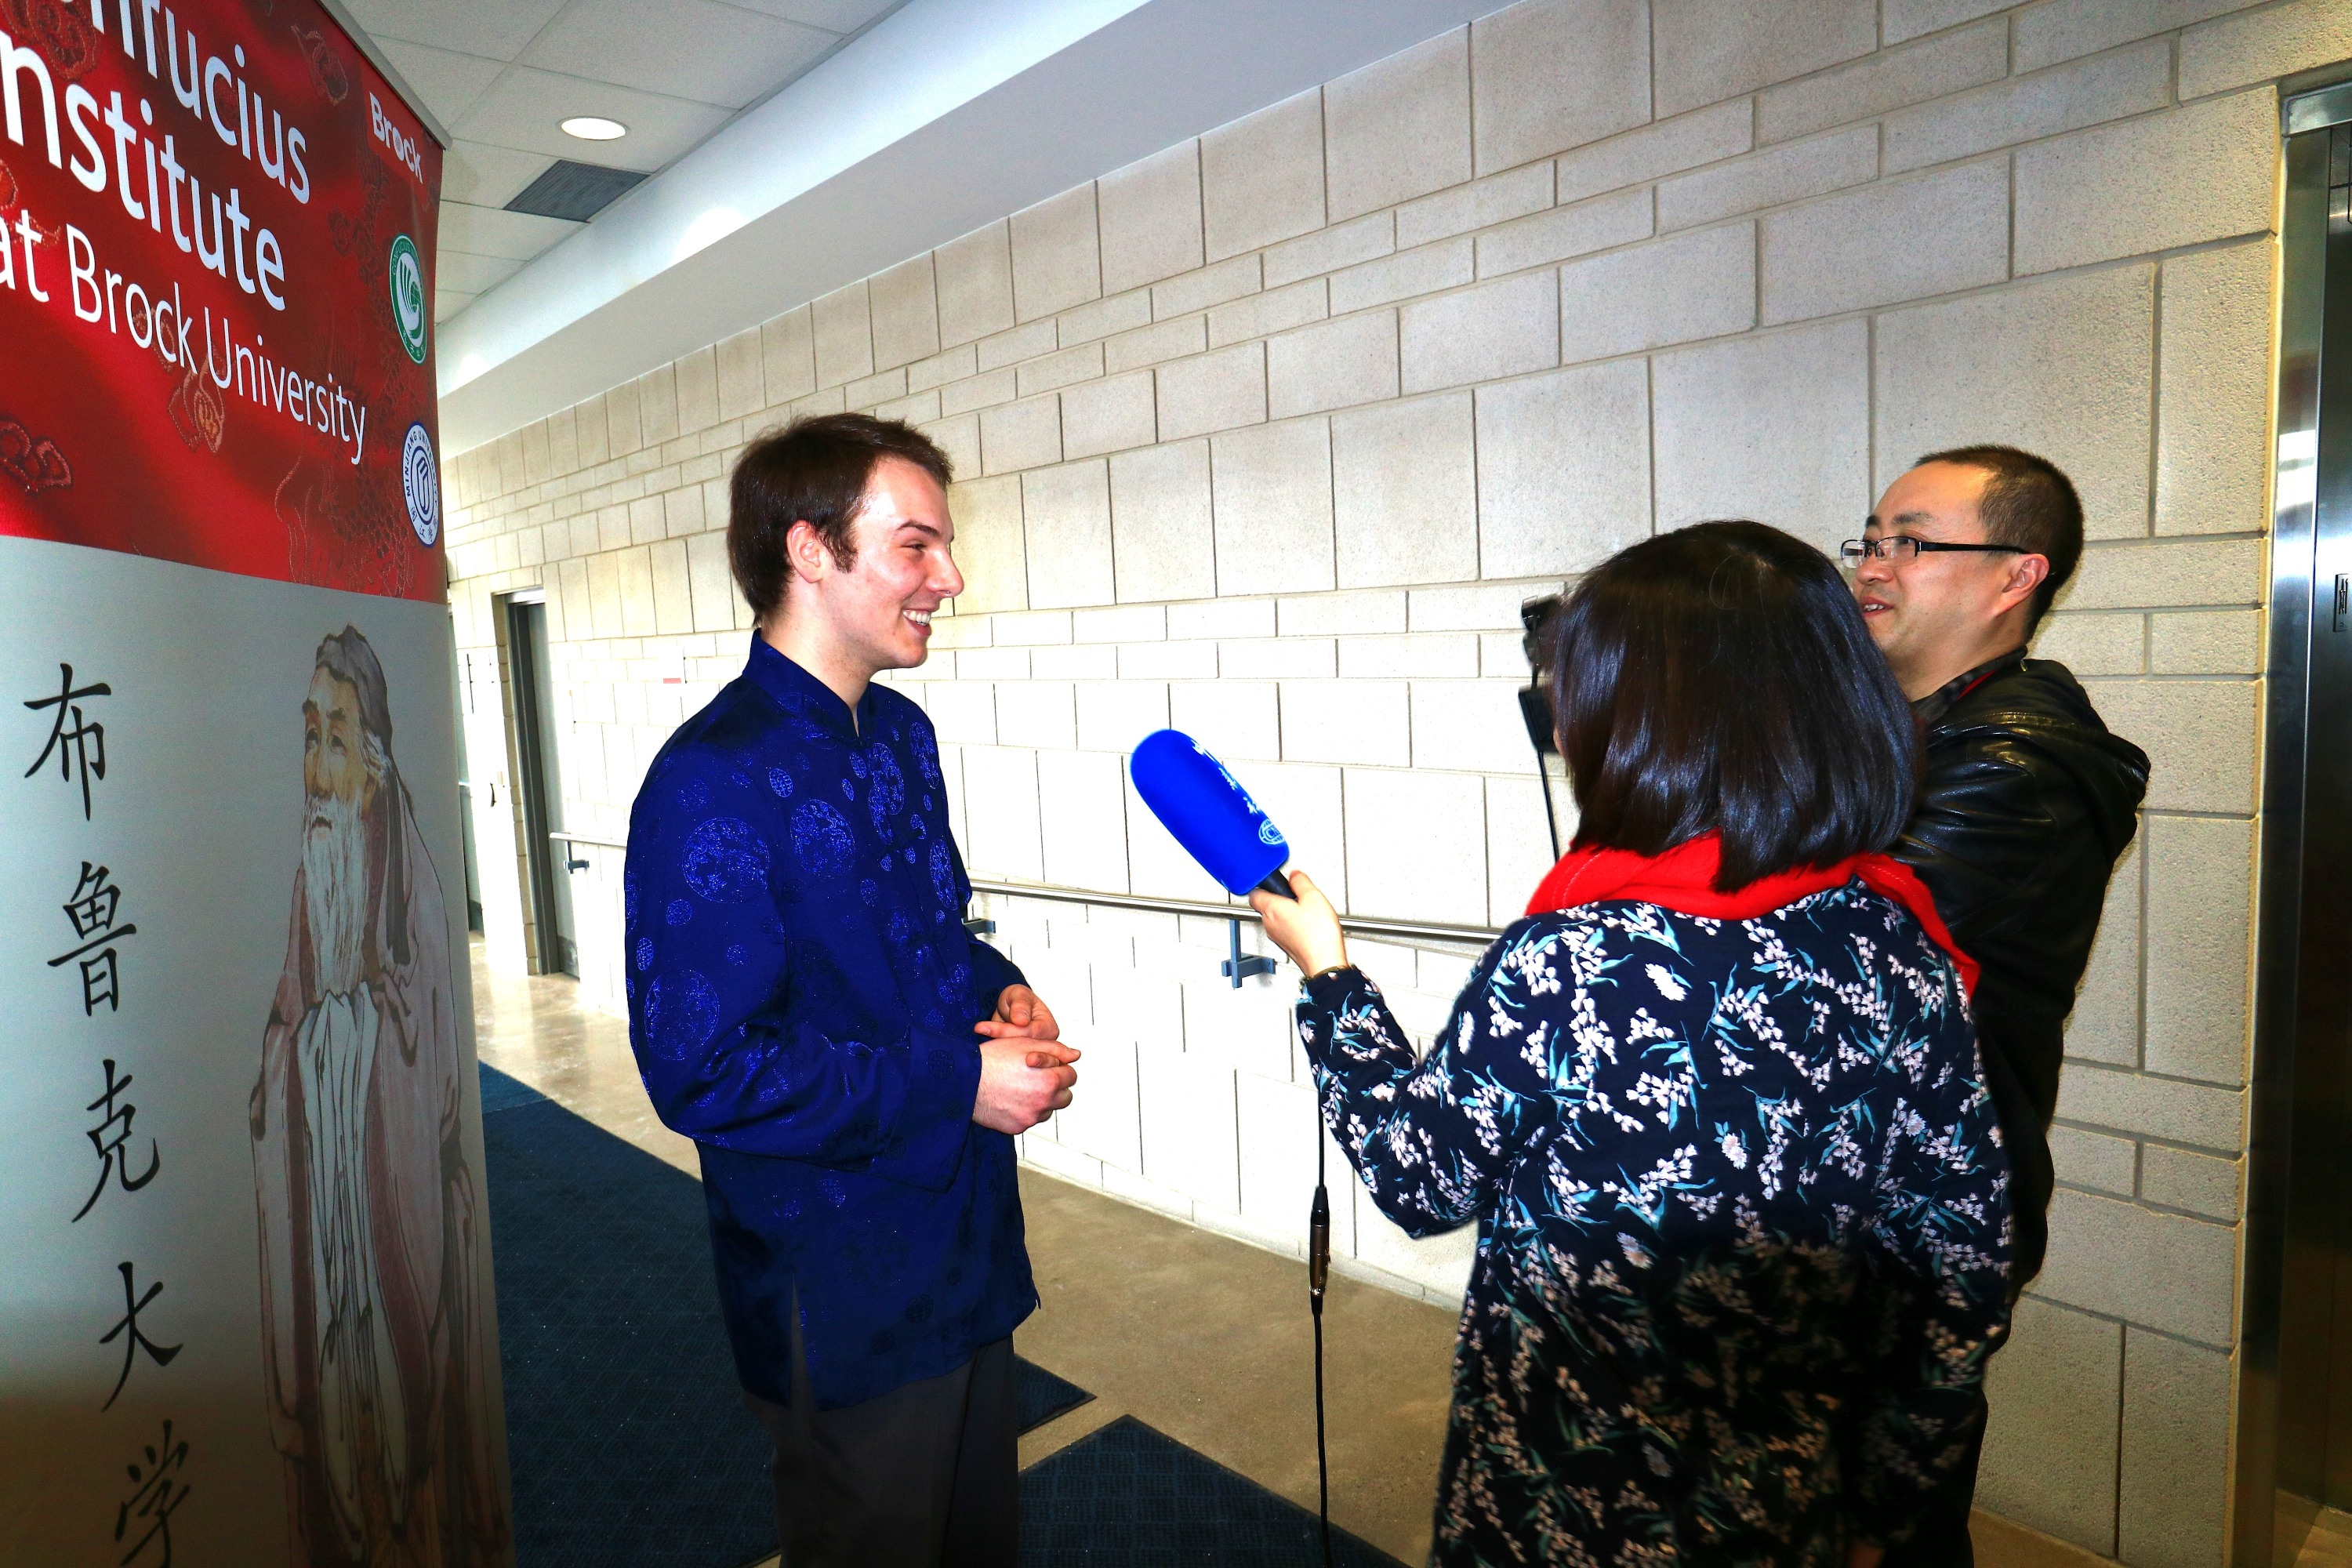 Daniel Cressman gets interviewed after winning Chinese Proficiency Competition